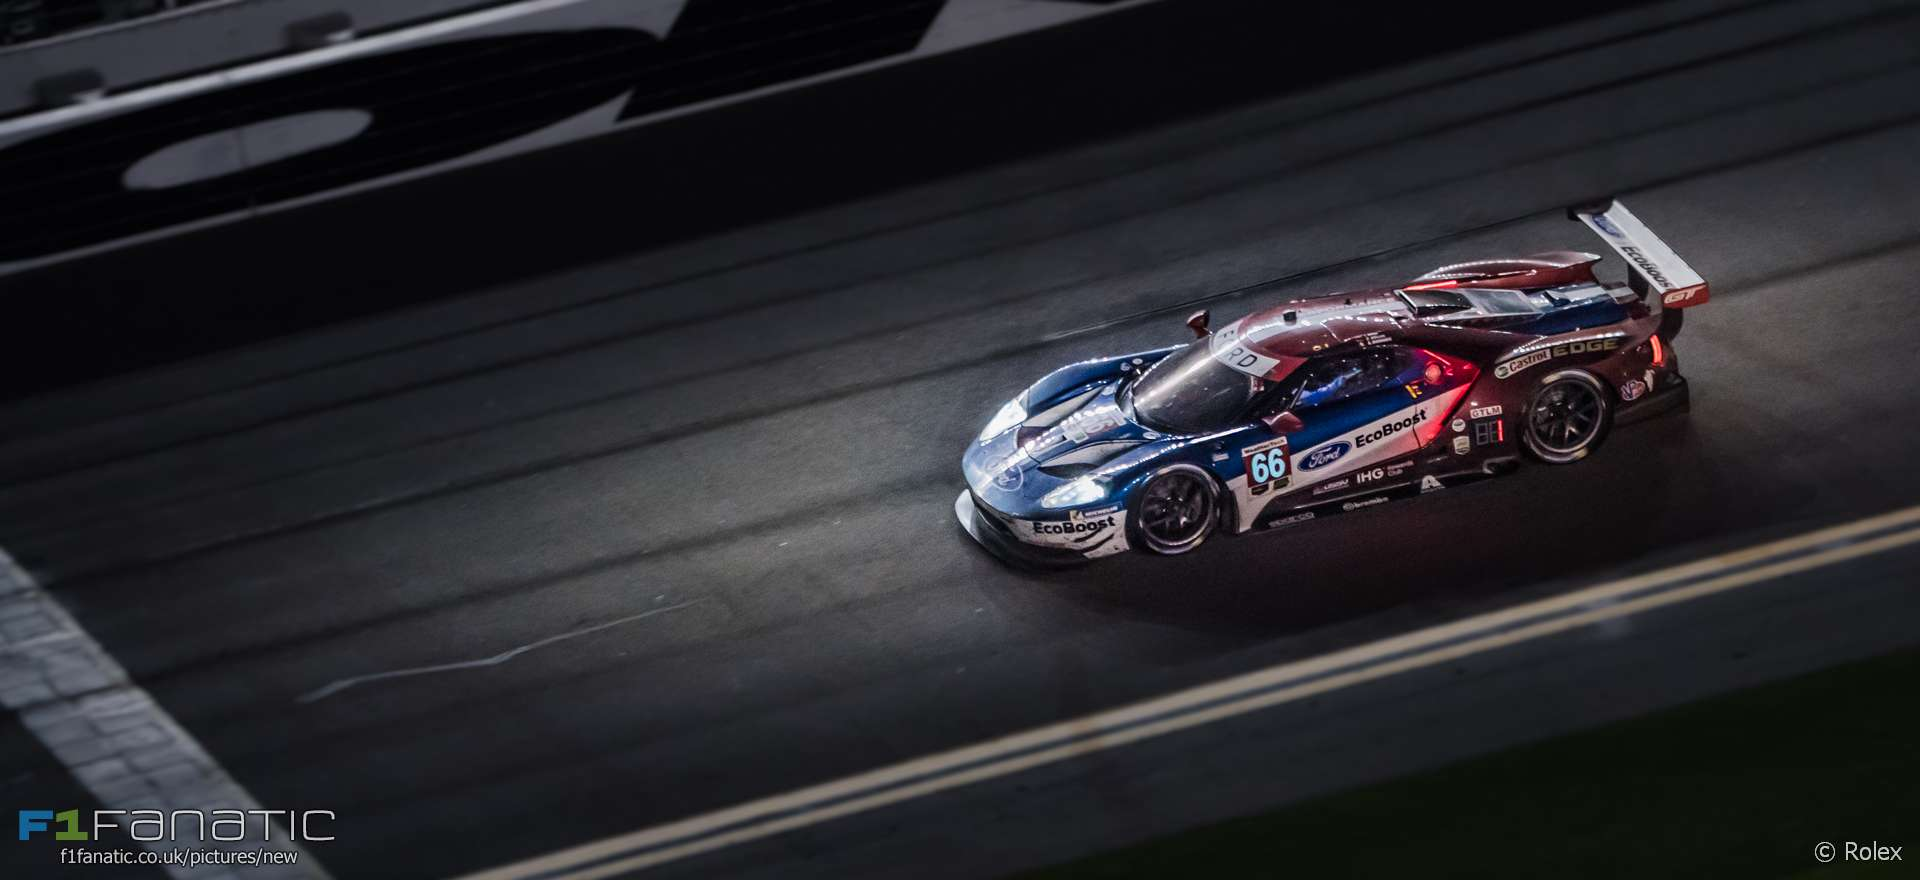 Ford GT, Daytona 24 Hours, 2018 · F1 Fanatic